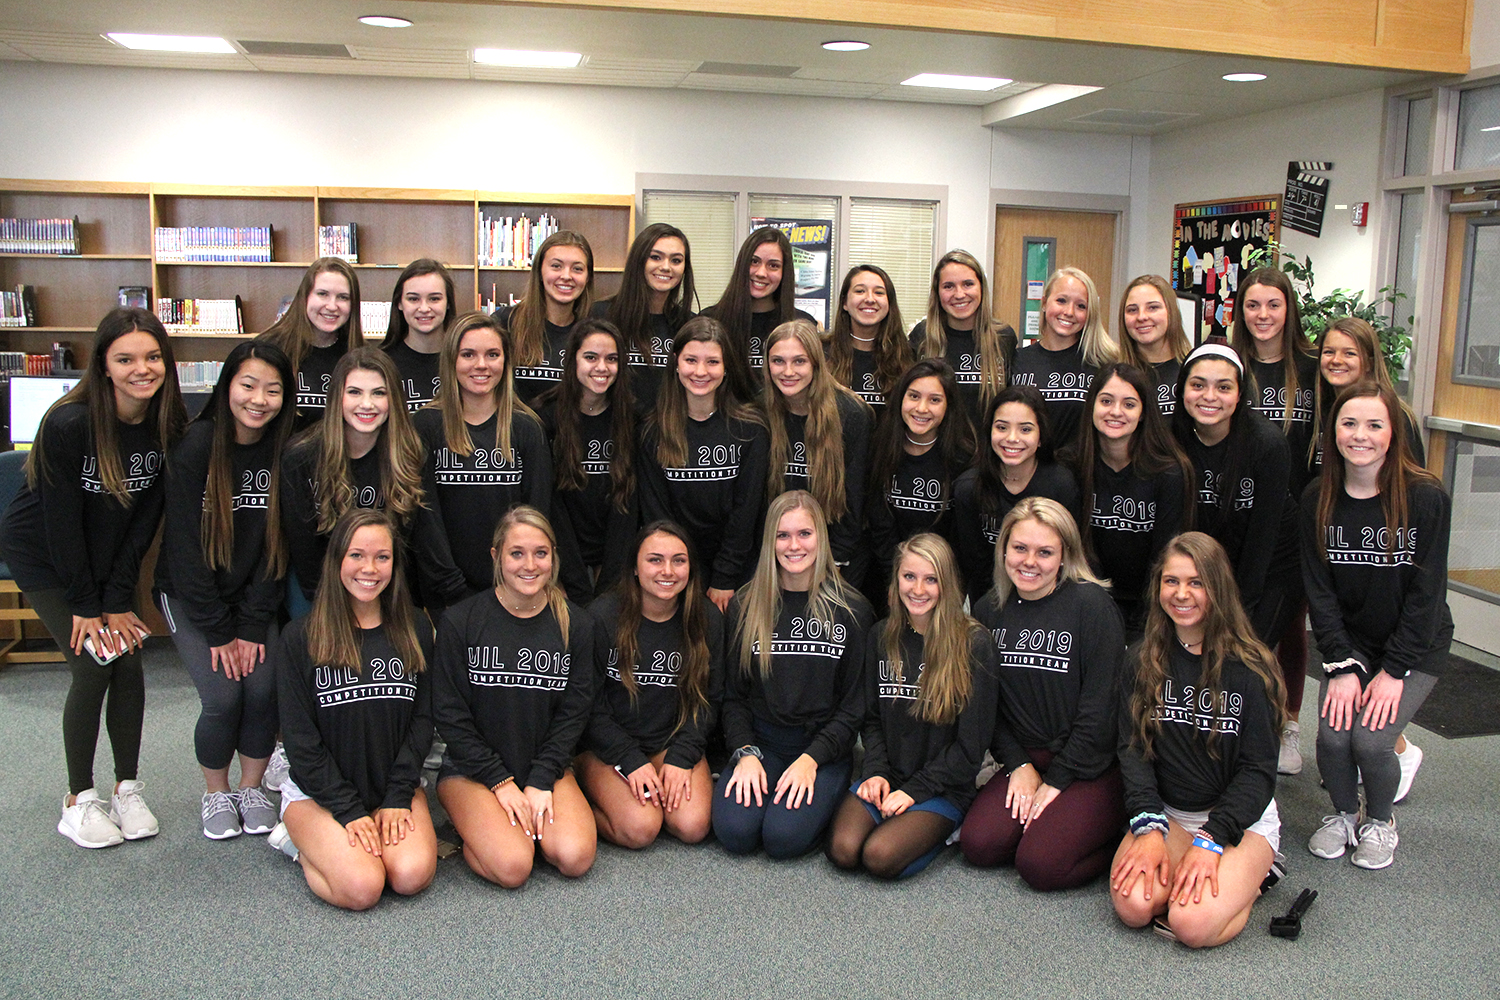 Before beginning their send-off on Thursday, Jan. 17, cheer waits in the library for their cue. Cheer competed on Saturday, Jan. 18,  at the UIL Spirit State Championship in Fort Worth TX.